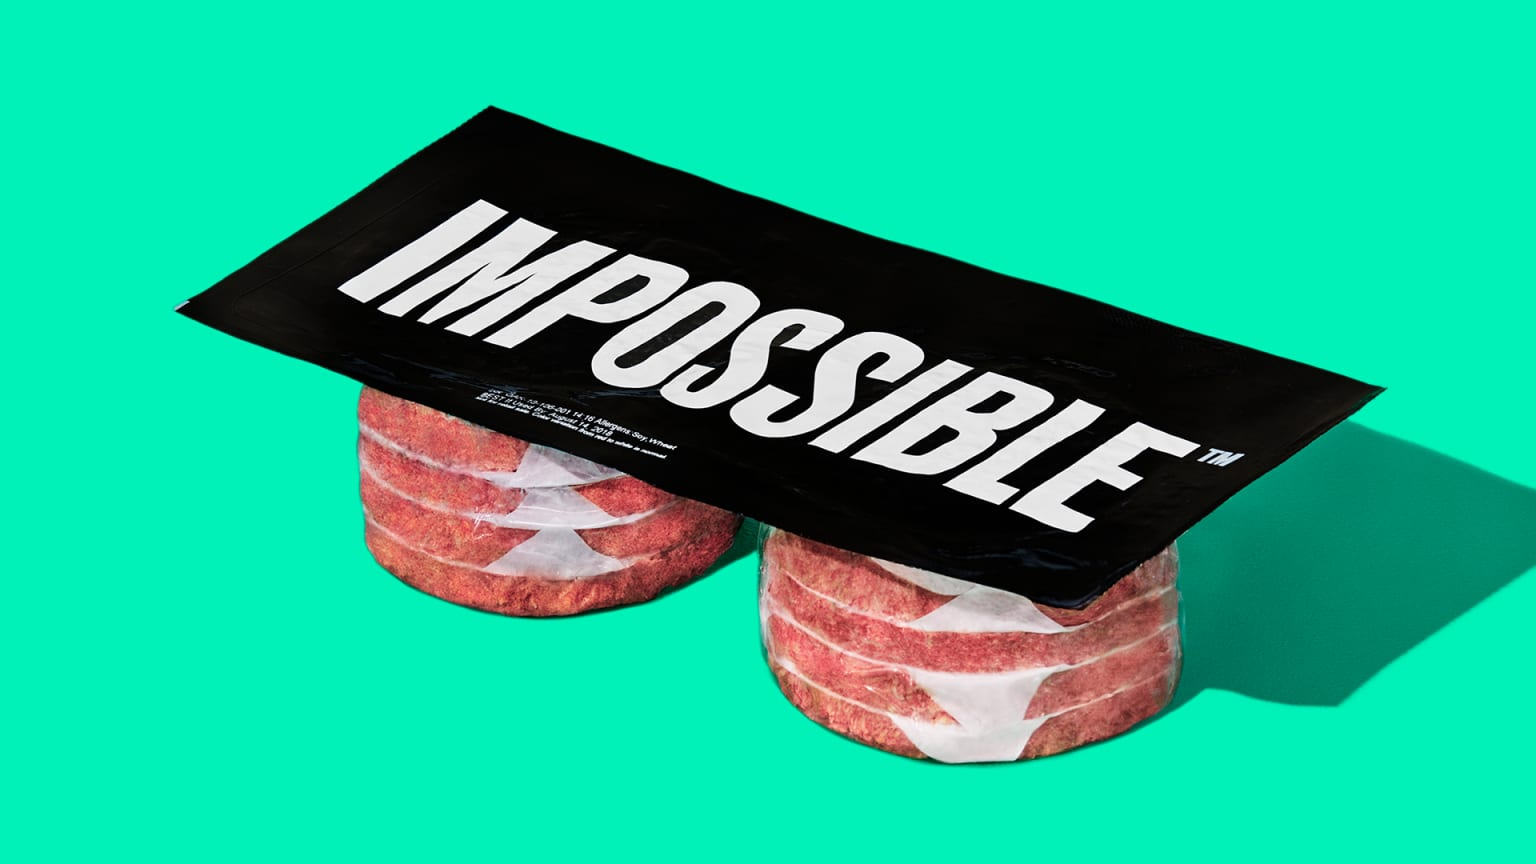 Impossible: Packaging